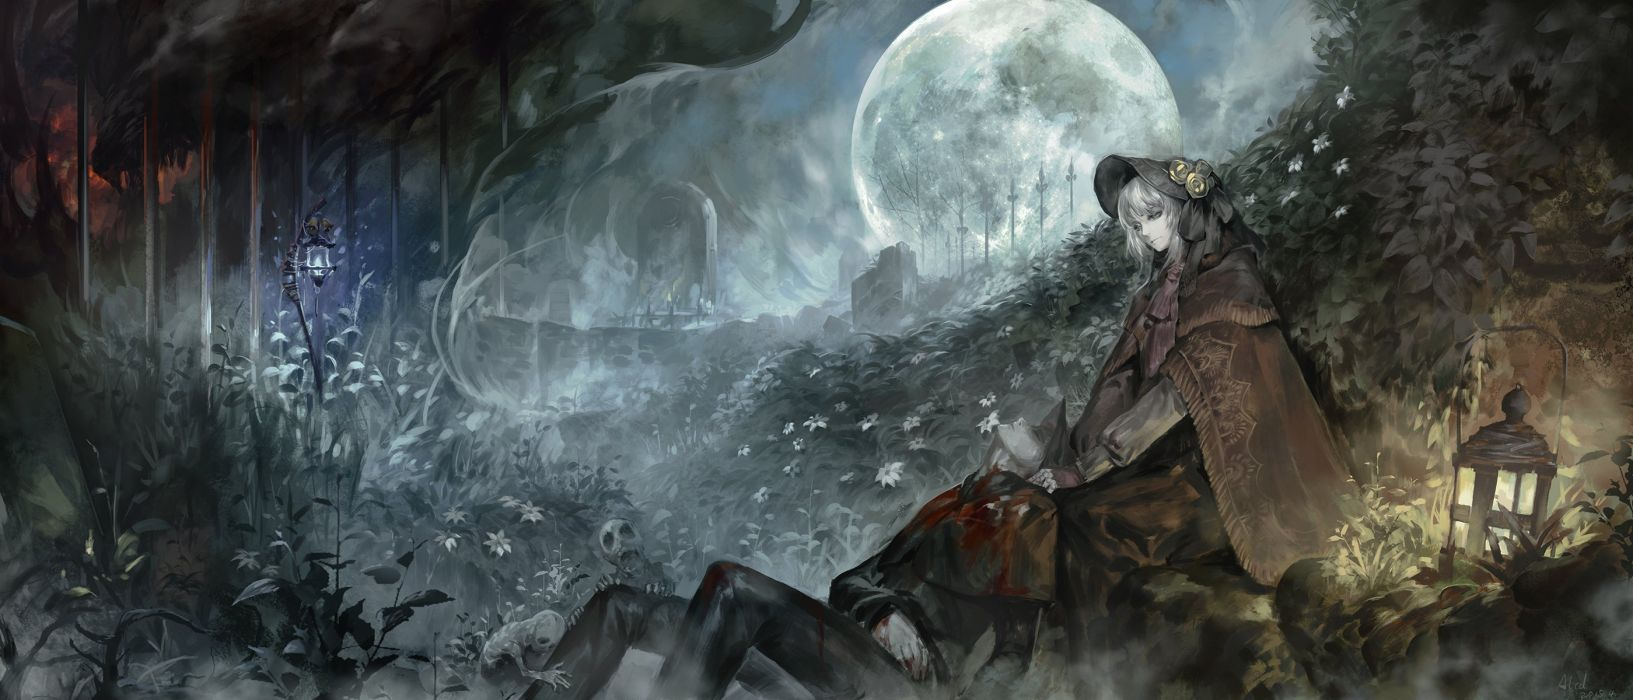 alcd blood bloodborne cape doll flowers gray hair hat landscape leaves male moon night polychromatic scenic skull the doll the hunter tree wallpaper